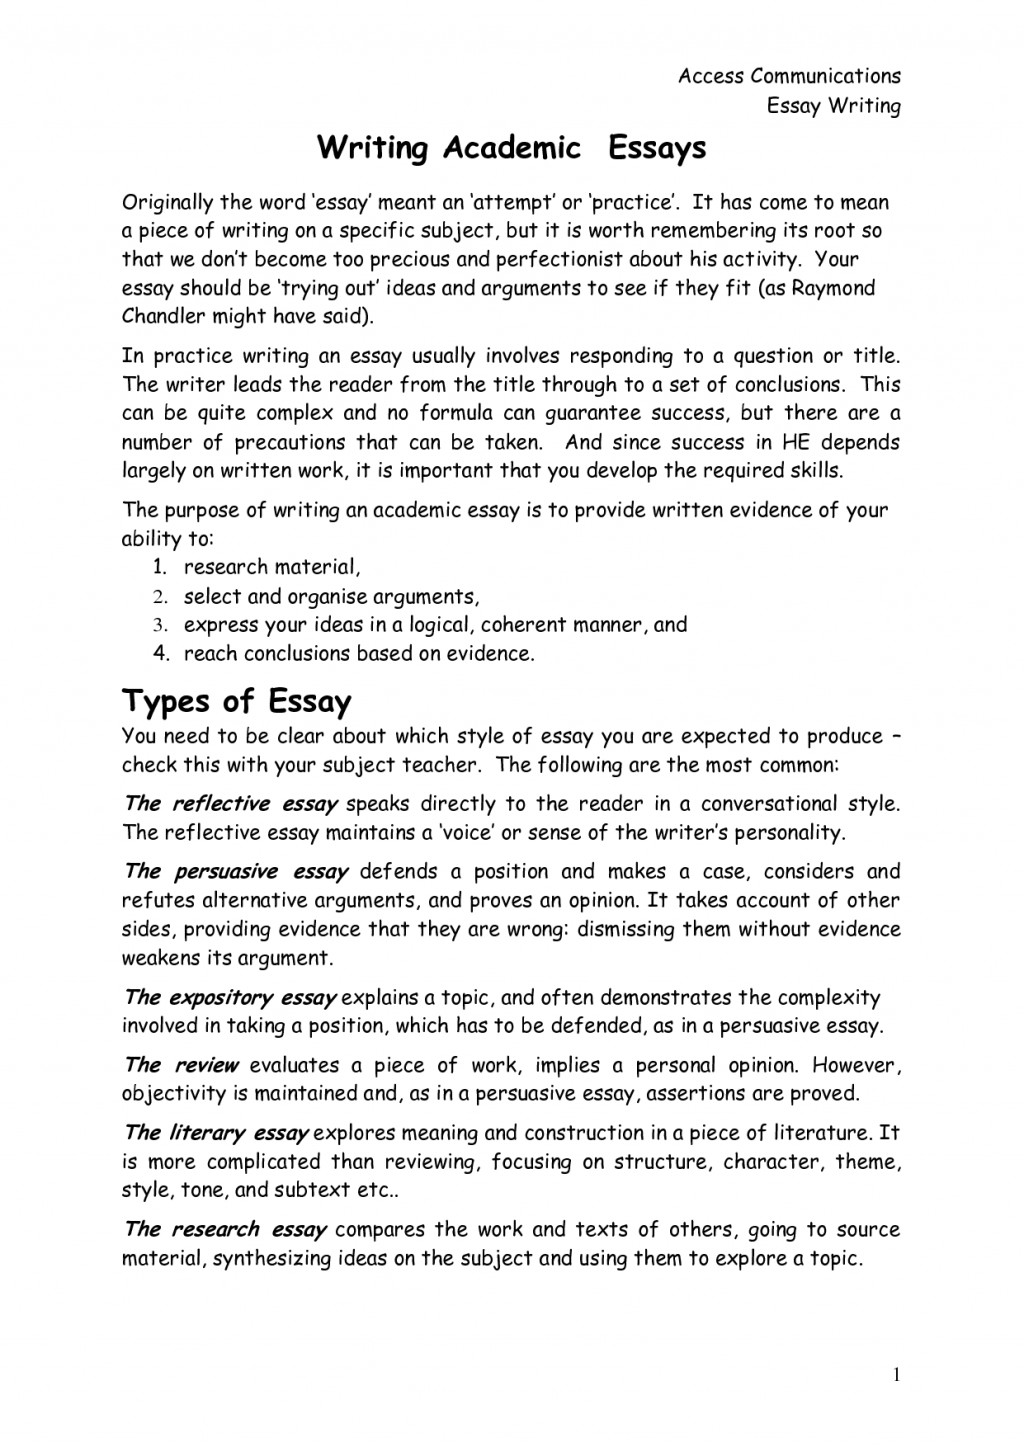 019 Write My Essay For Me Example Surprising Reviews Canada Free Uk Large